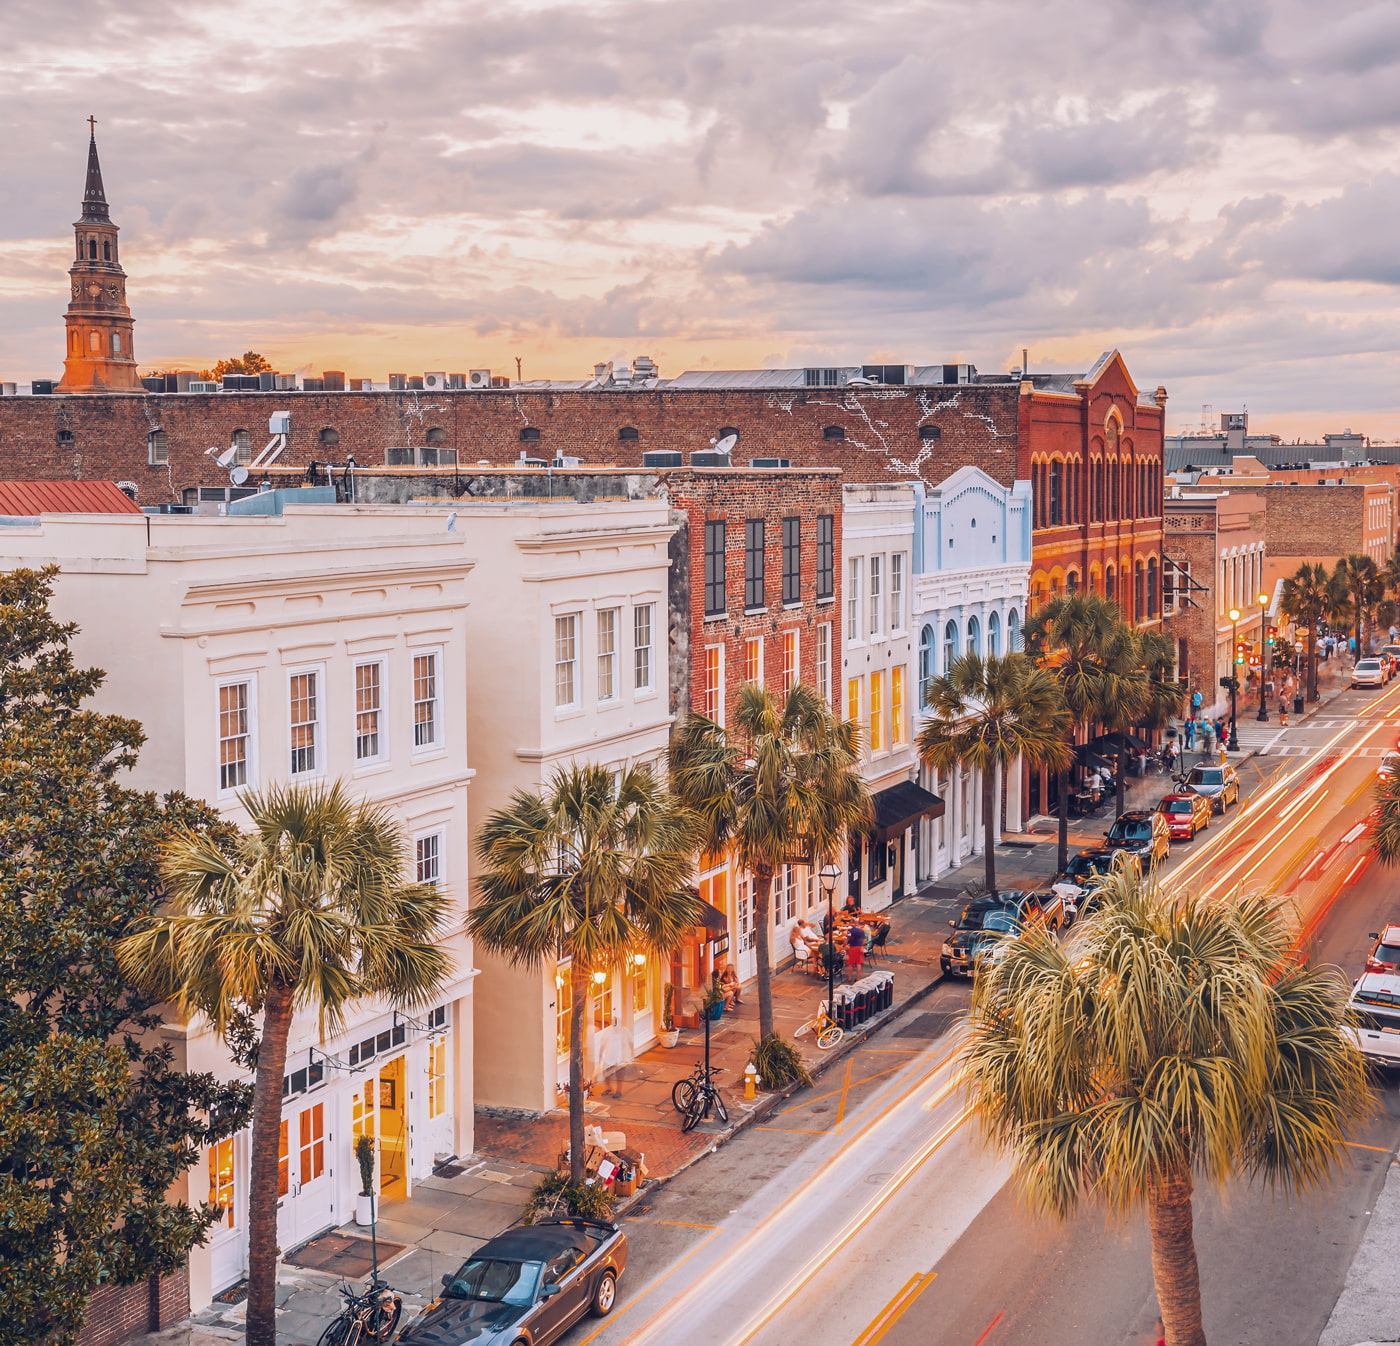 Historical architecture in Charleston